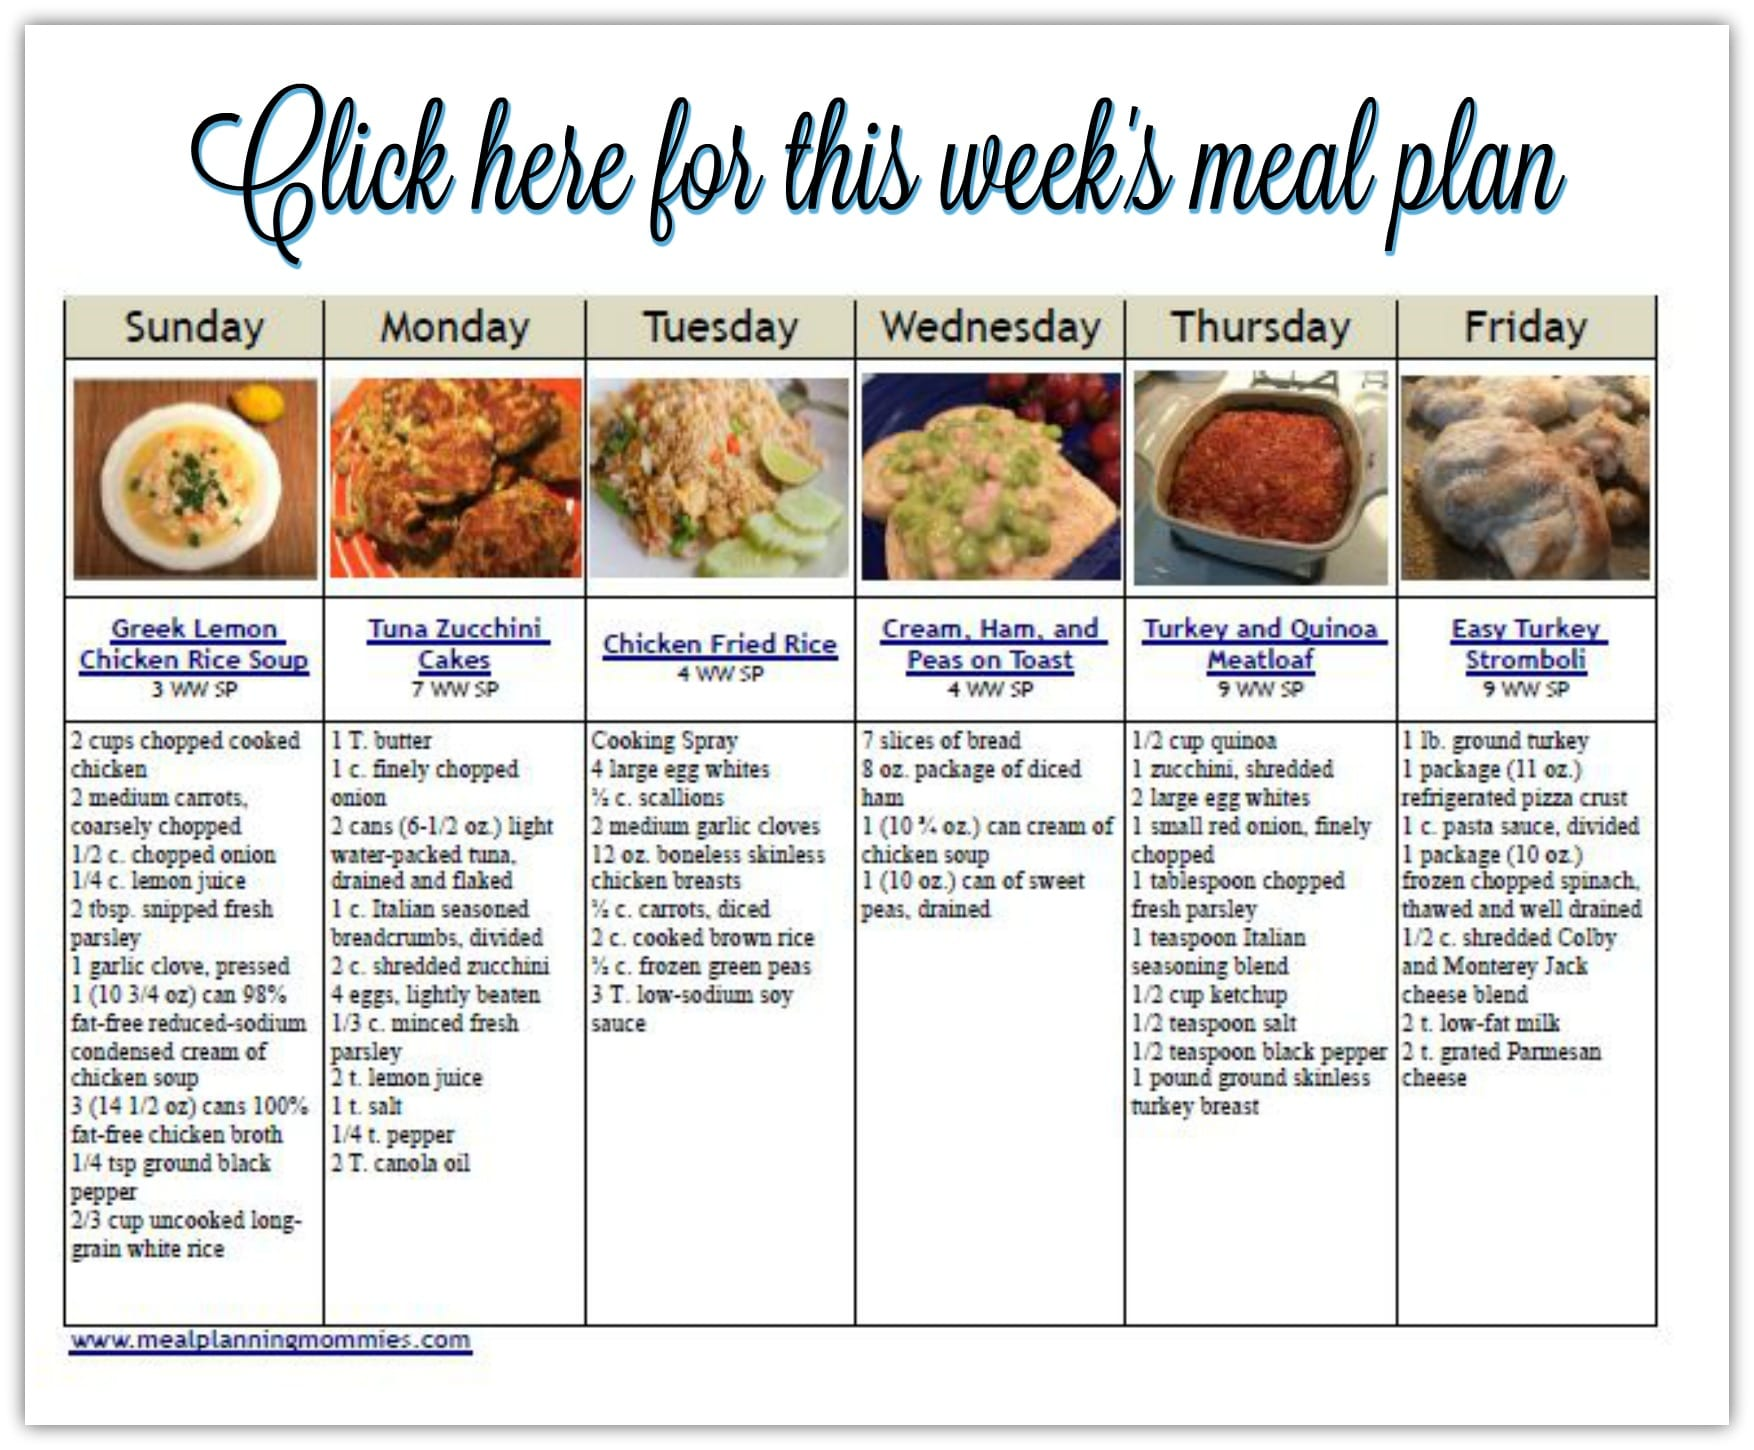 Weight Watcher Friendly Meal Plan With Smart Points 15